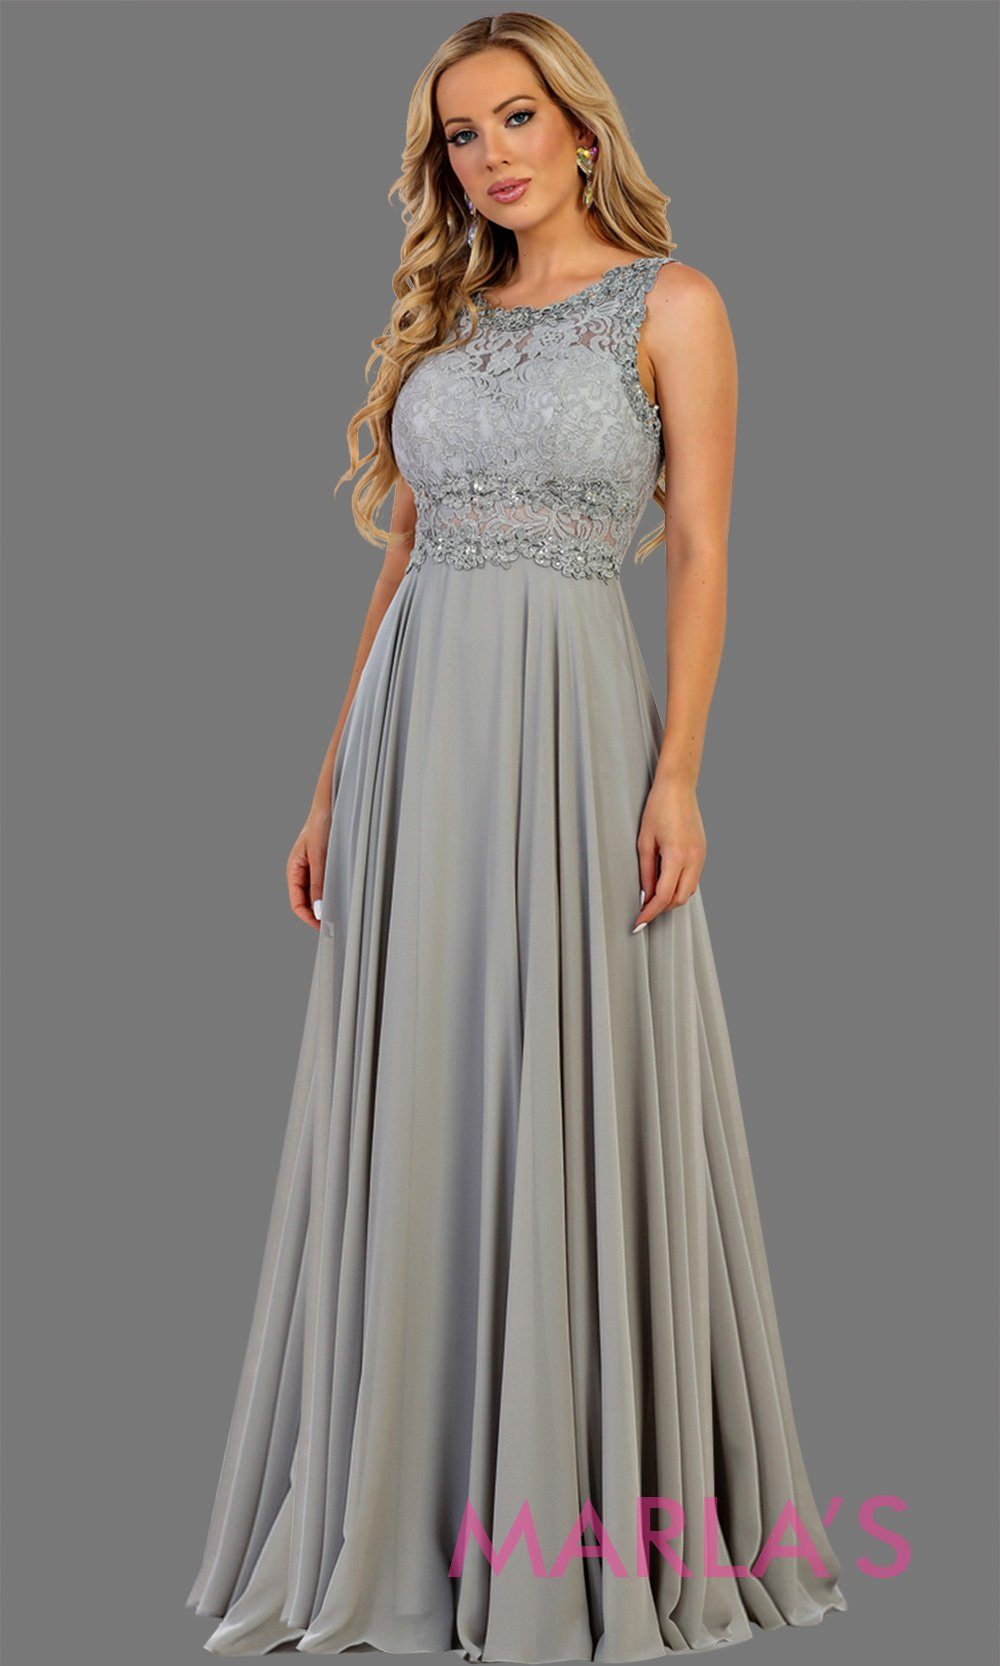 Long light gray or silver flowy party dress with lace top and see thru waist and back. This gray dress is perfect for prom, formal party, gala event, light gray flowy wedding guest dress, modest gown,bridesmaid dress. Available in plus sizes.